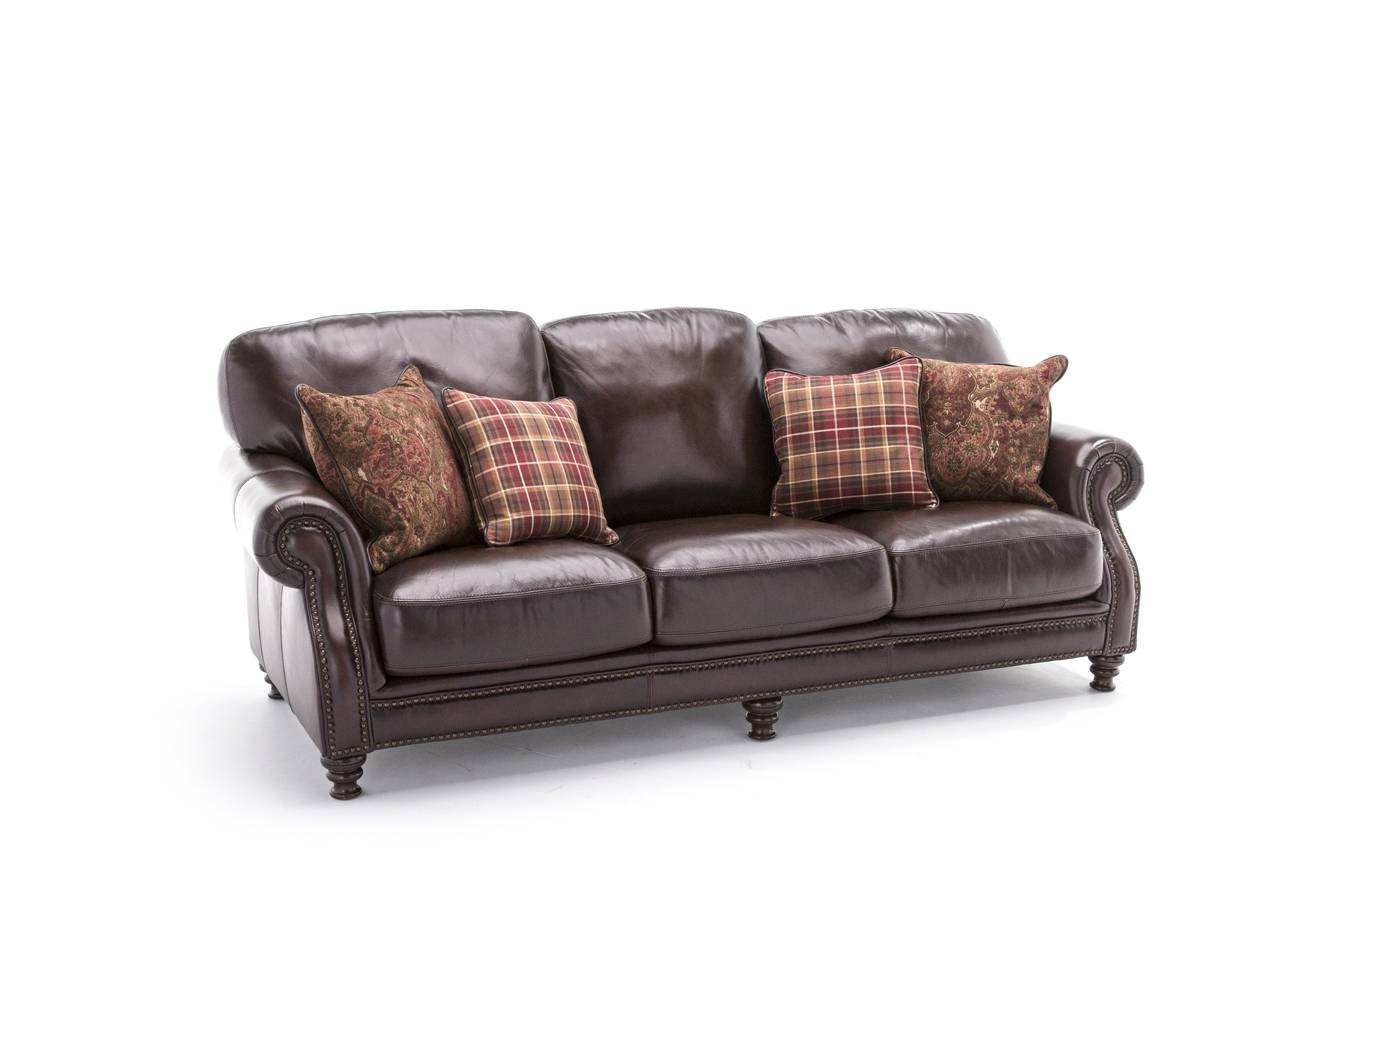 sofas endearing furniture sofa white incredible with corner bentley suite and set pretty black leather